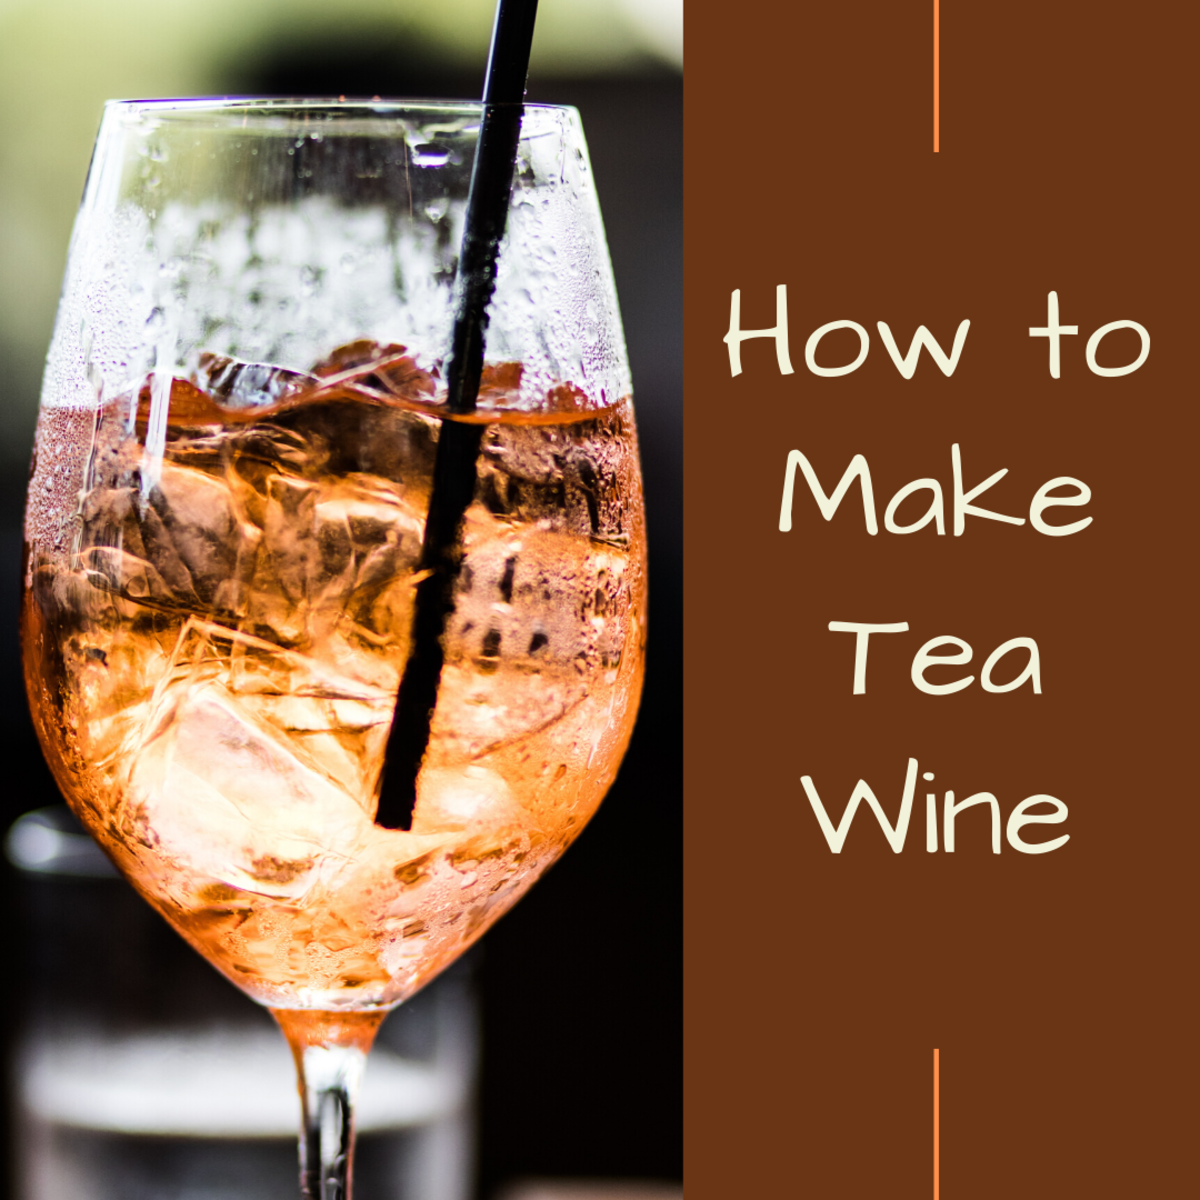 Recipe: How to Make Wine From Tea